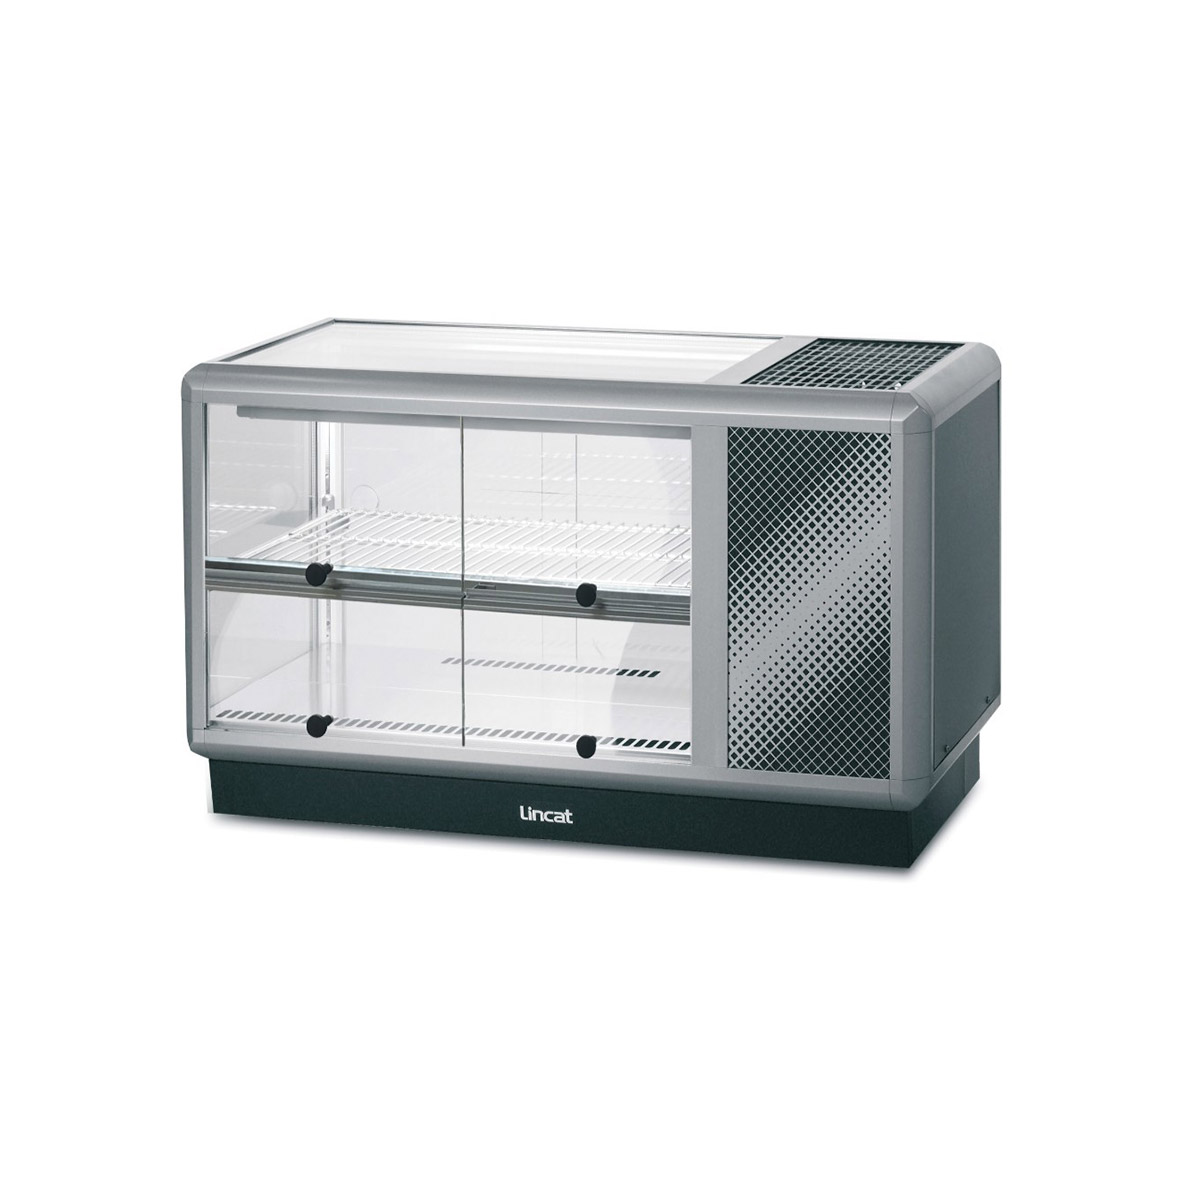 D5R/100S - Lincat Seal 500 Series Counter-top Refrigerated Merchandiser - Self-Service - W 1000 mm - 0.6 kW